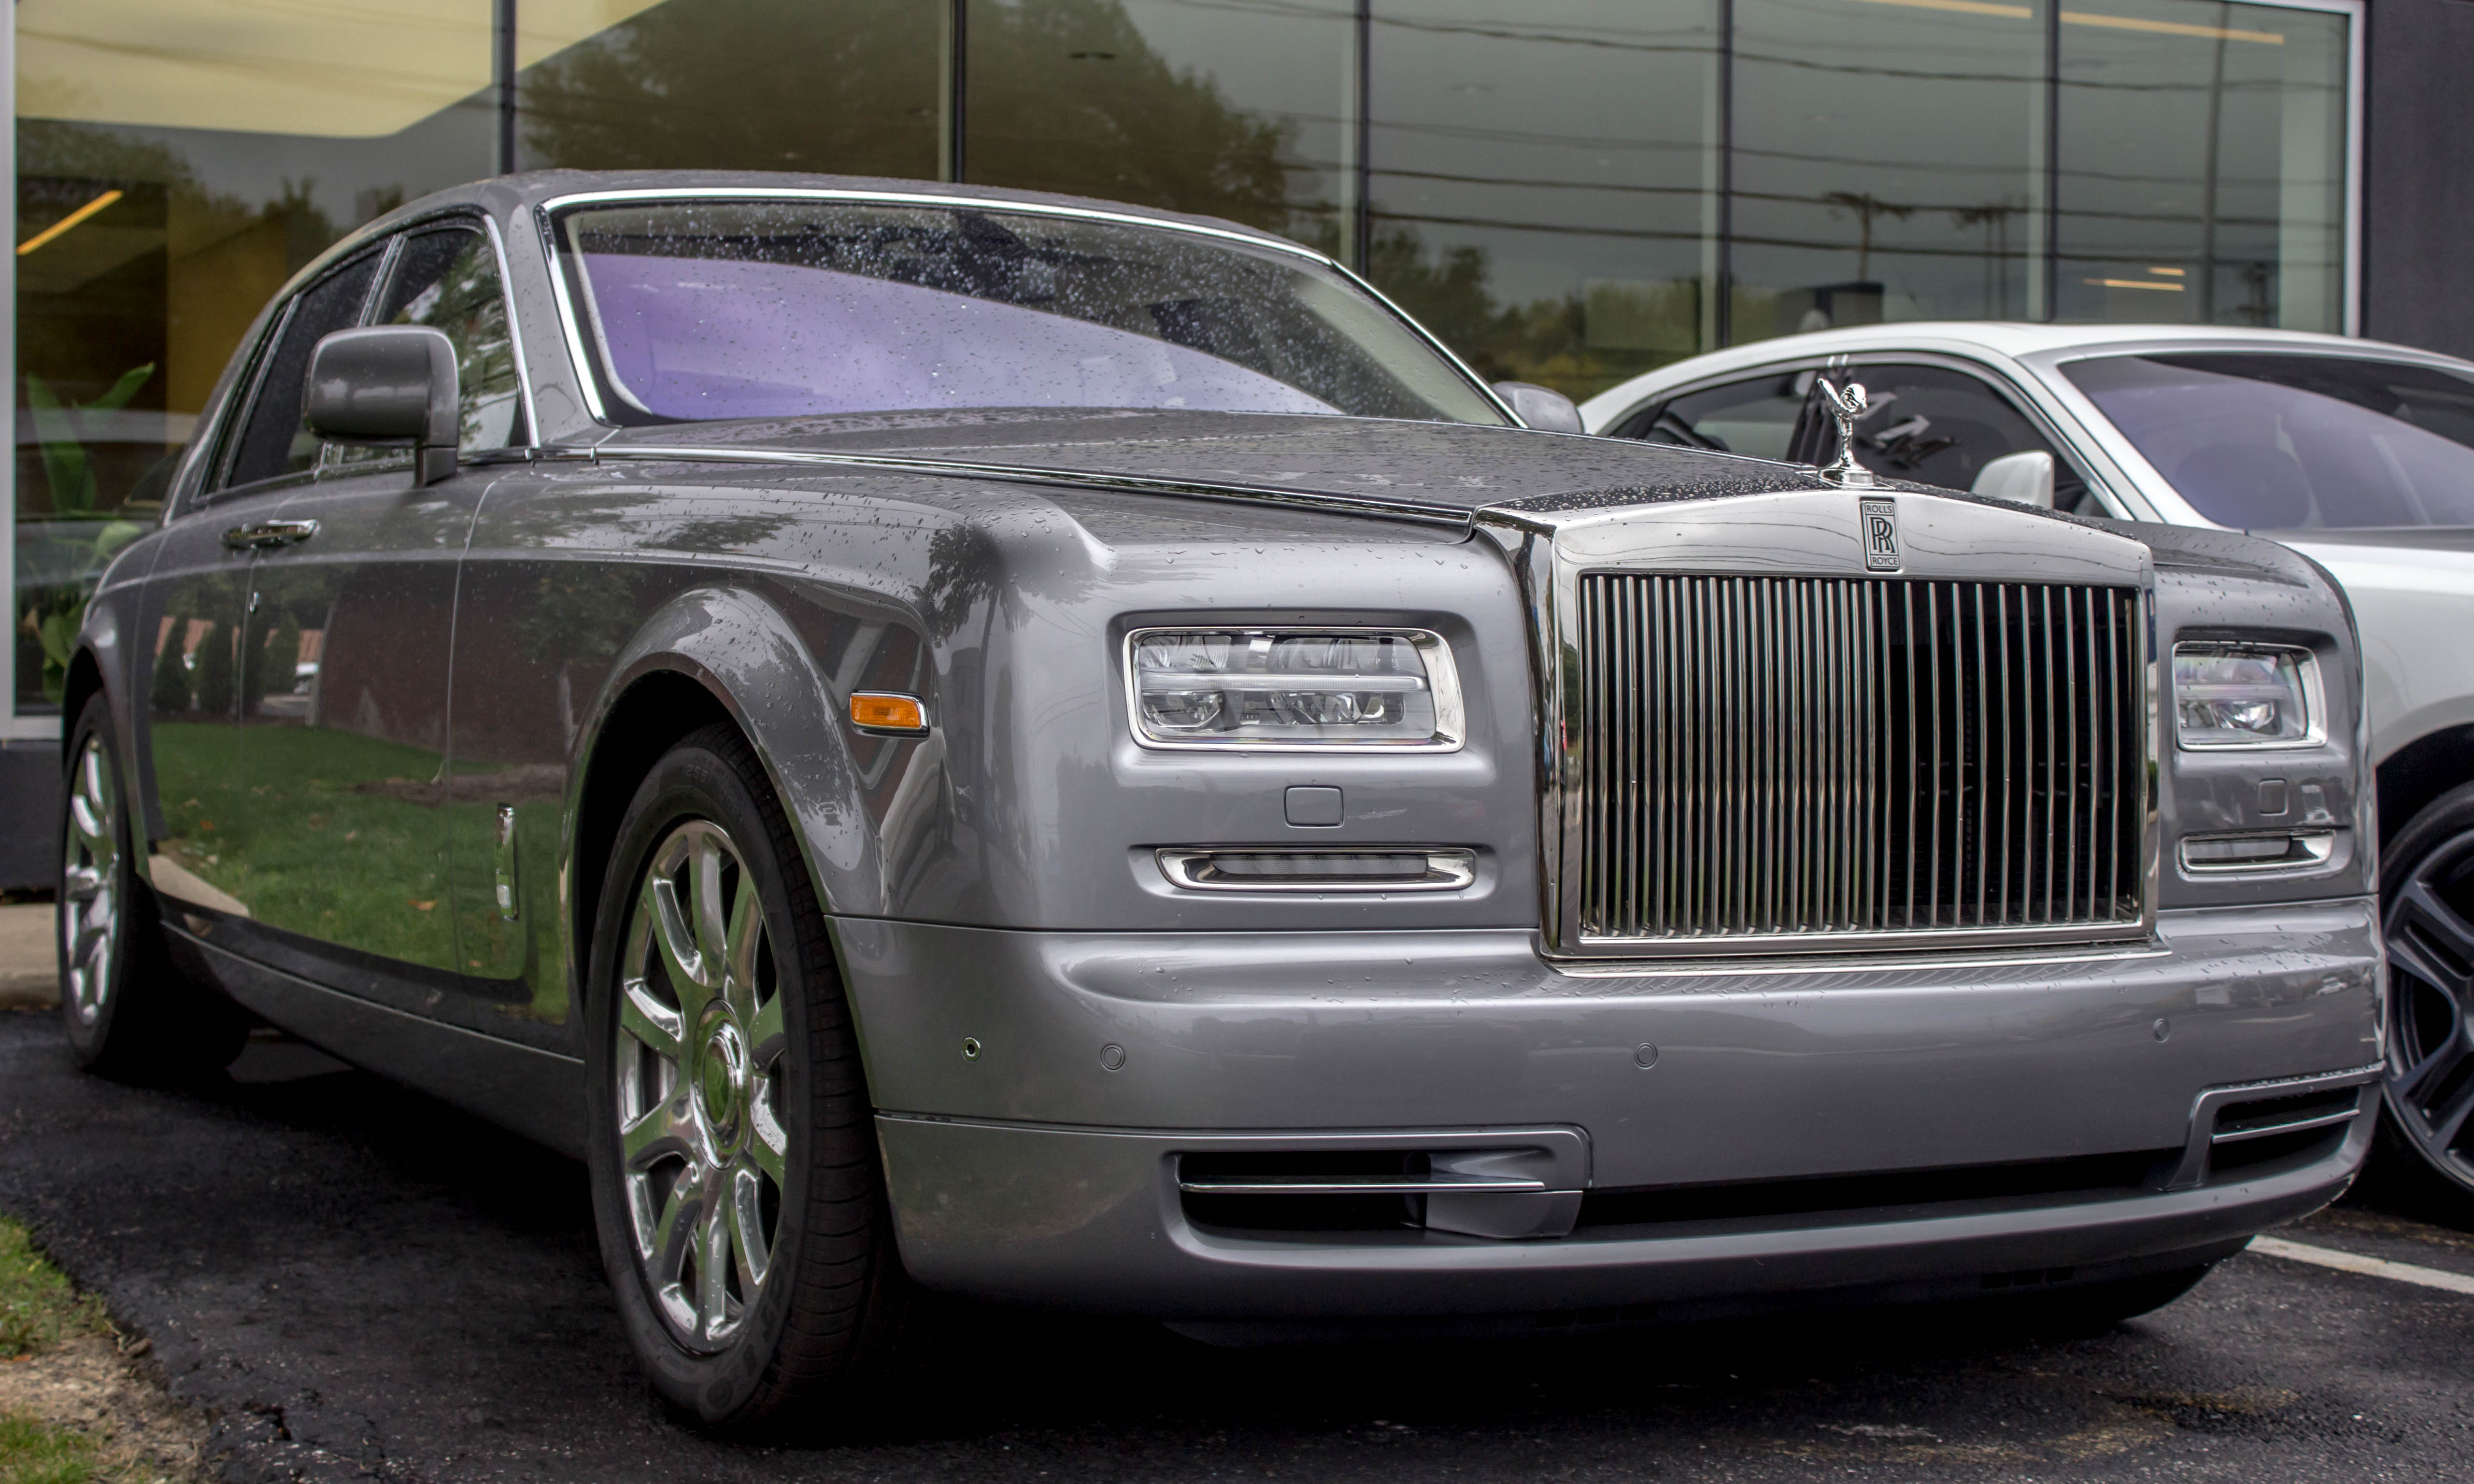 2016 rolls royce phantom only 300 miles sold exotic car search. Black Bedroom Furniture Sets. Home Design Ideas